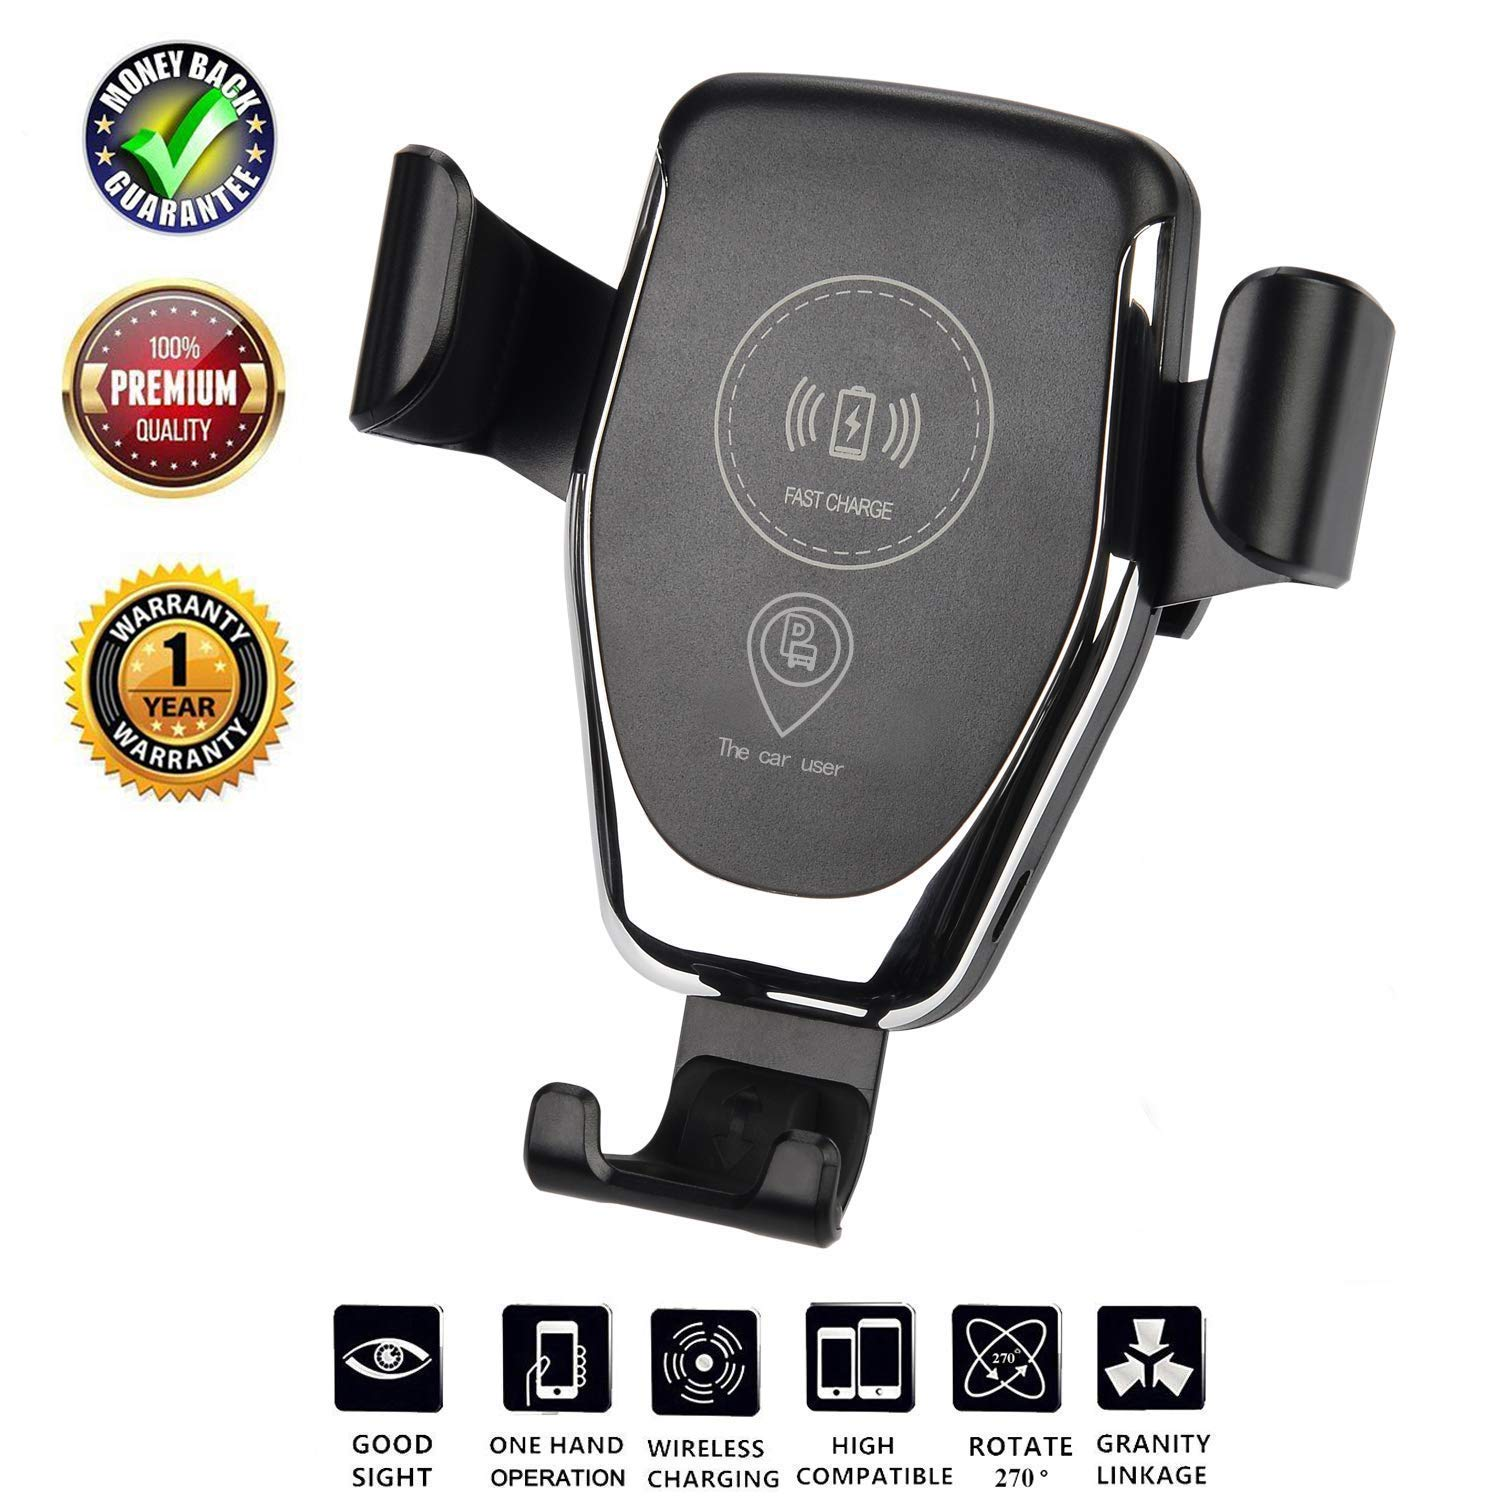 Wireless Charger Car Mount, One-Hand Auto Clamping Air Vent Phone Holder, 10W Fast Charging for Samsung Galaxy S8 S9 S7 Note 8. 7.5W Compatible with iPhone 8/XS/XR/X and Qi Enabled Devices.Black by Dupige